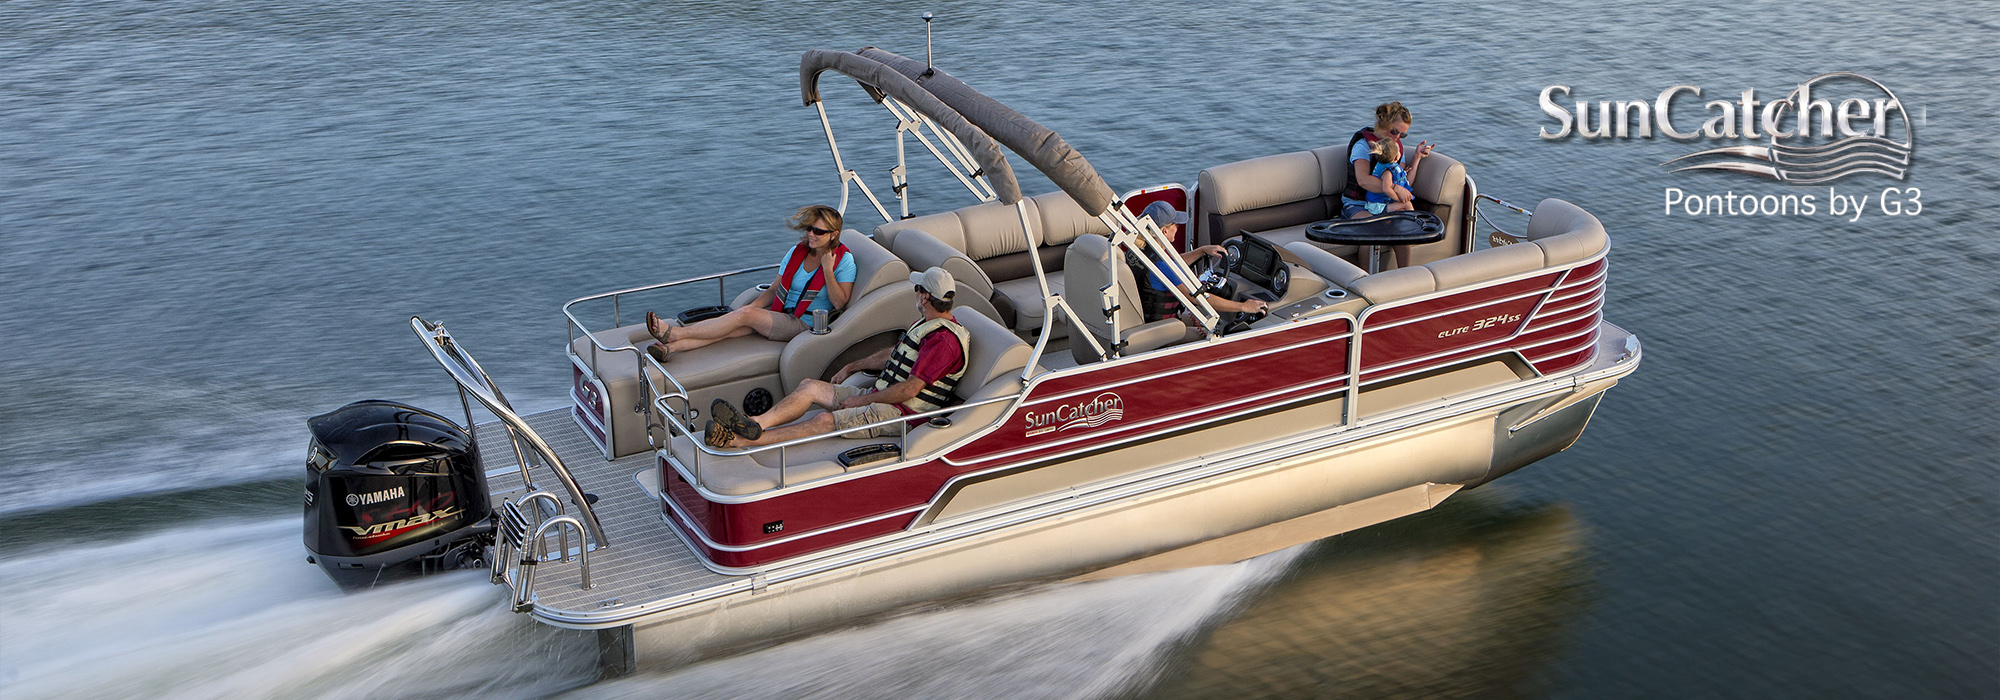 sun catcher pontoons elite 324 ss